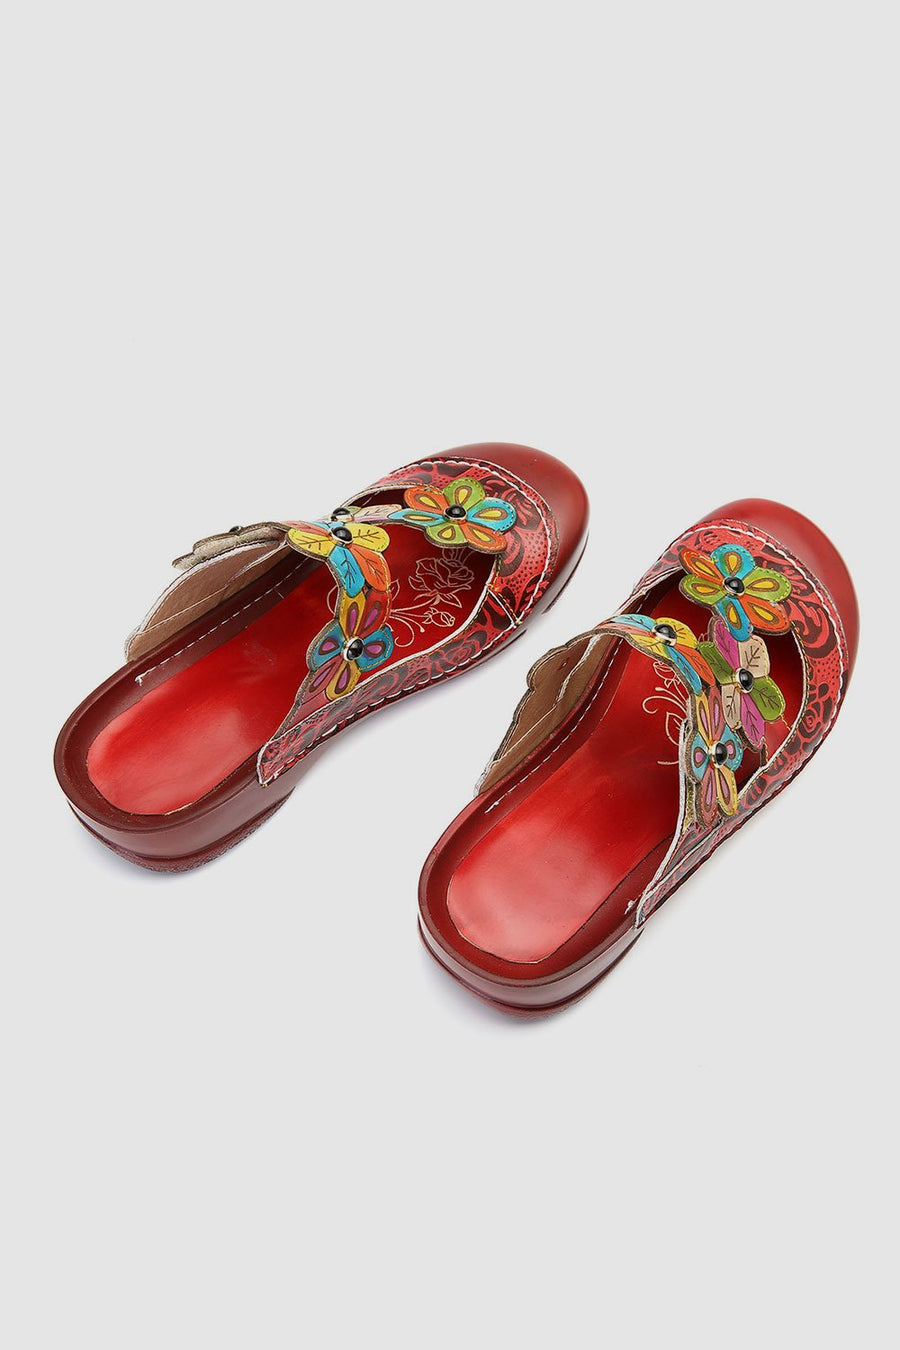 Retro Flower Pattern Handmade Leather Flat Round Head Comfortable Casual Sandals - Zebrant